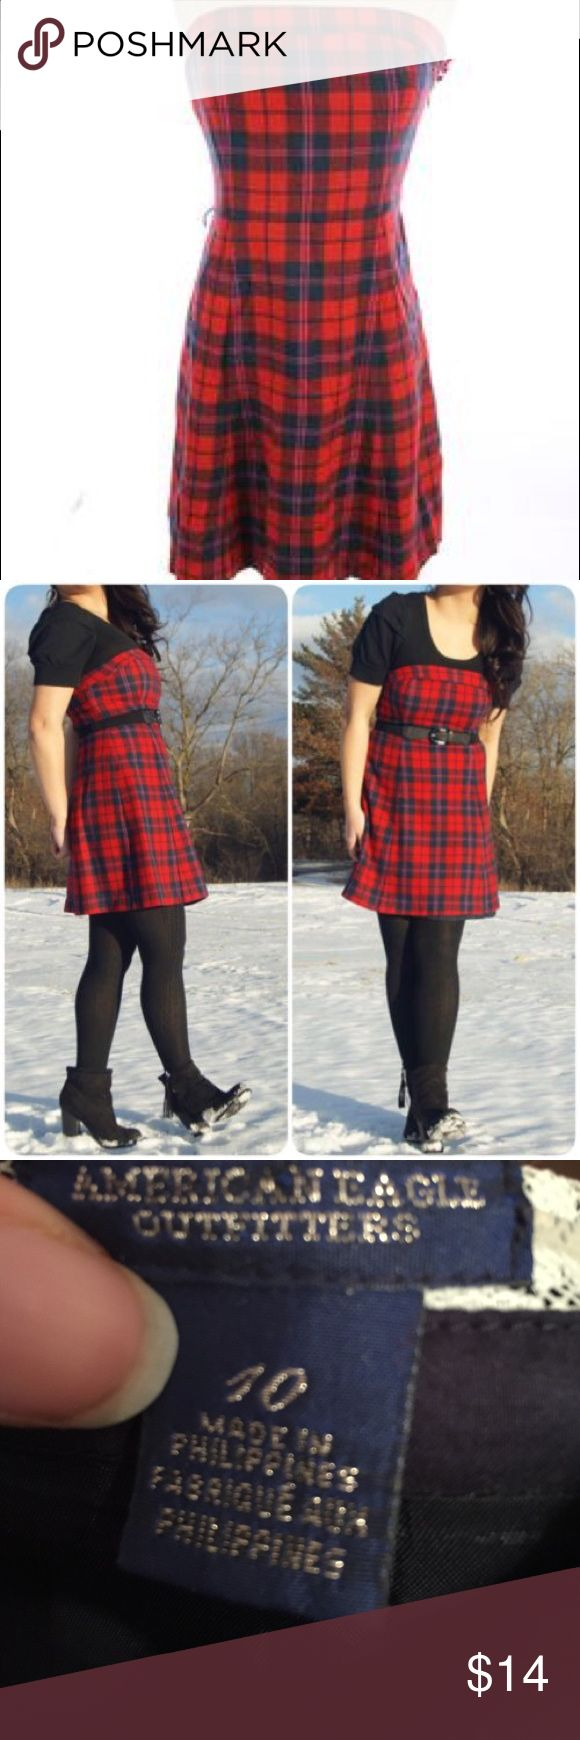 American Eagle plaid strapless dress American Eagle wool plaid strapless dress with tie waist and silky lining. Red and navy plaid with hints of pink. Hits above the knee. Perfect for the holidays. Worn a few times. Size 10. American Eagle Outfitters Dresses Strapless